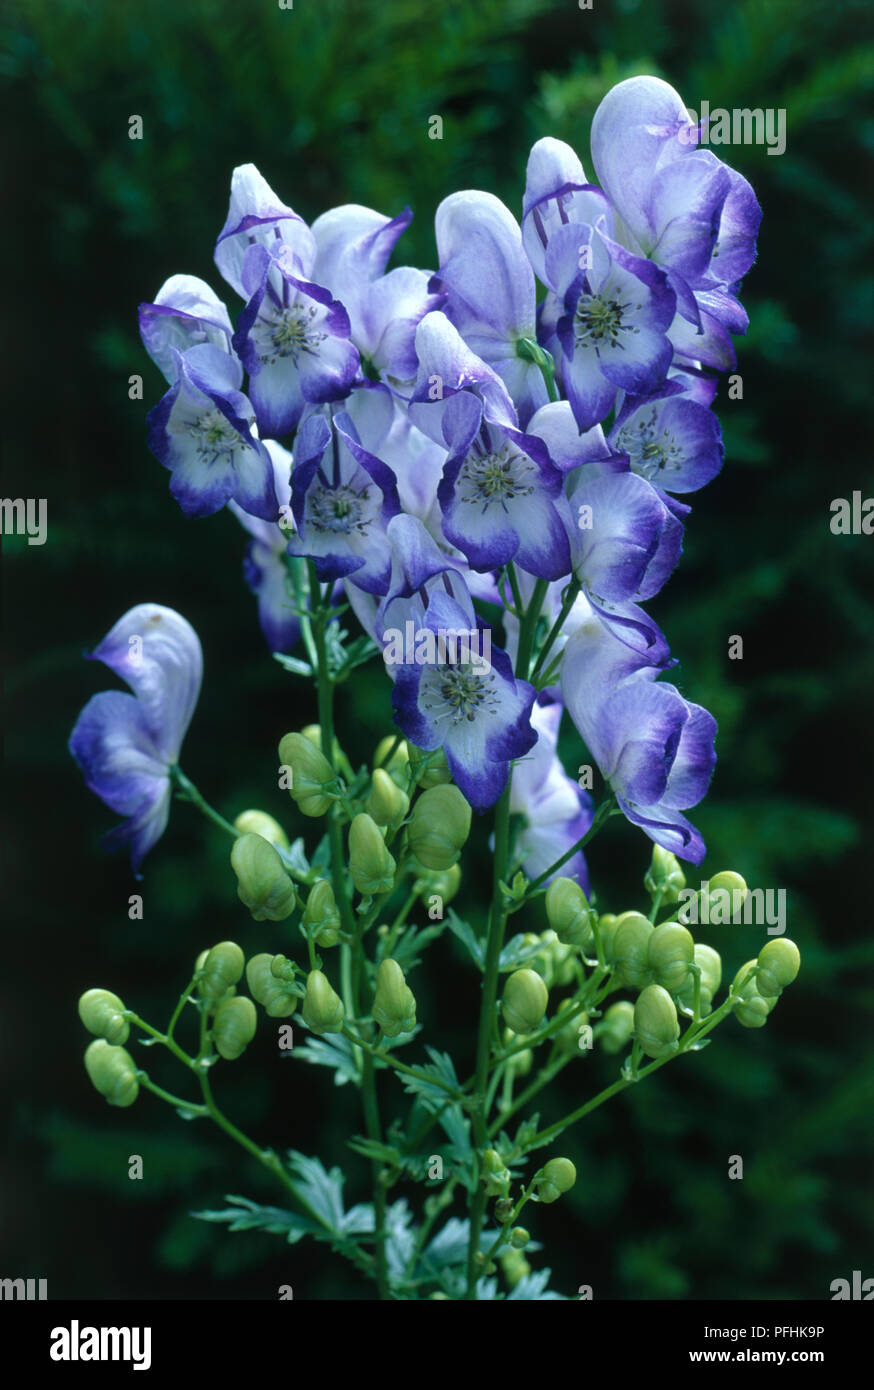 Aconitum X Cammarum Bicolor Cluster Of Blue And White Flowers And